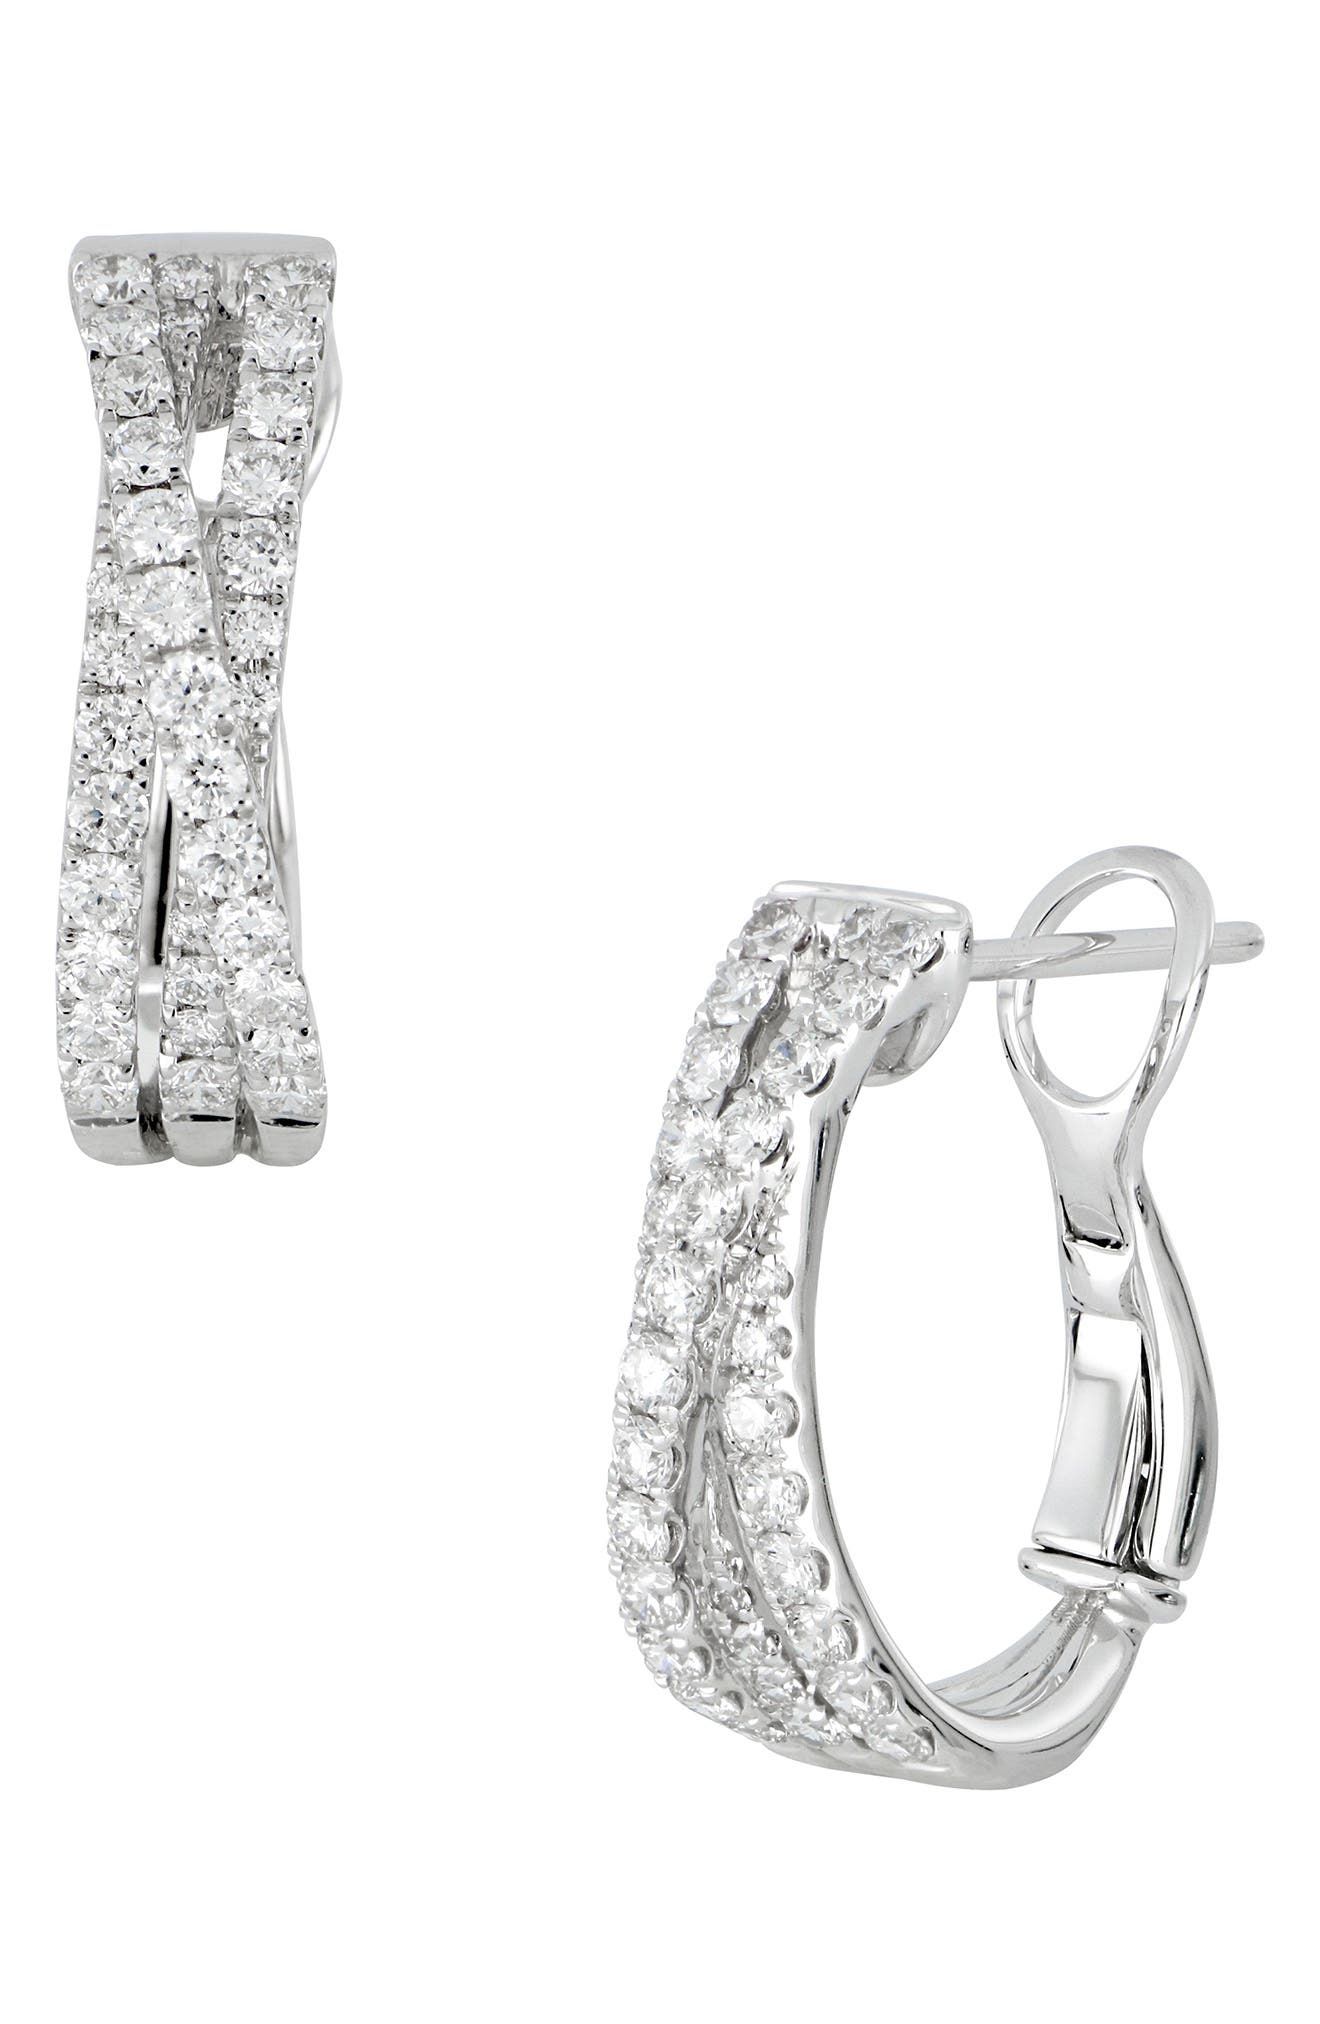 Twist Diamond Hoop Earrings,                         Main,                         color, WHITE GOLD/ DIAMOND